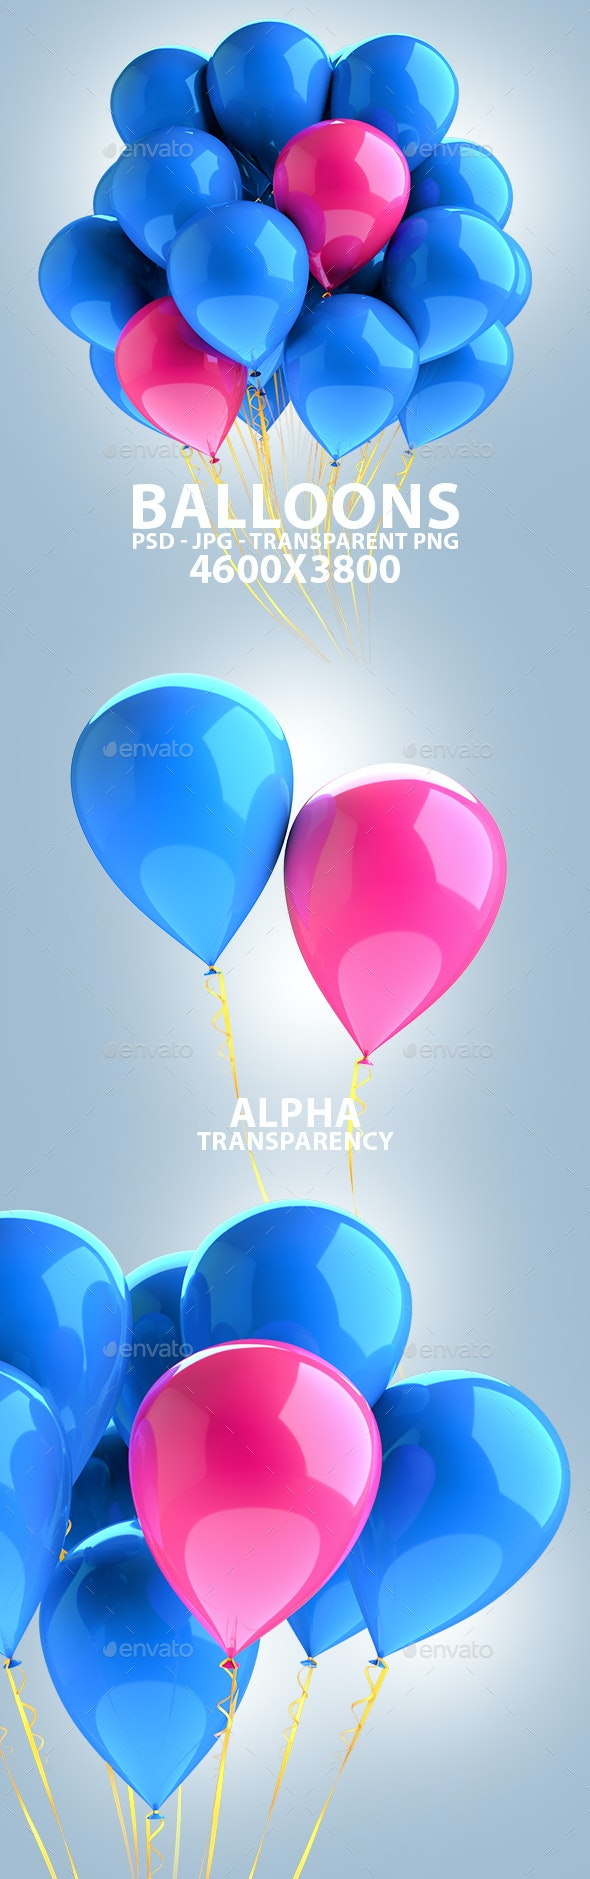 Balloons Isolated 3D Renders - Objects 3D Renders